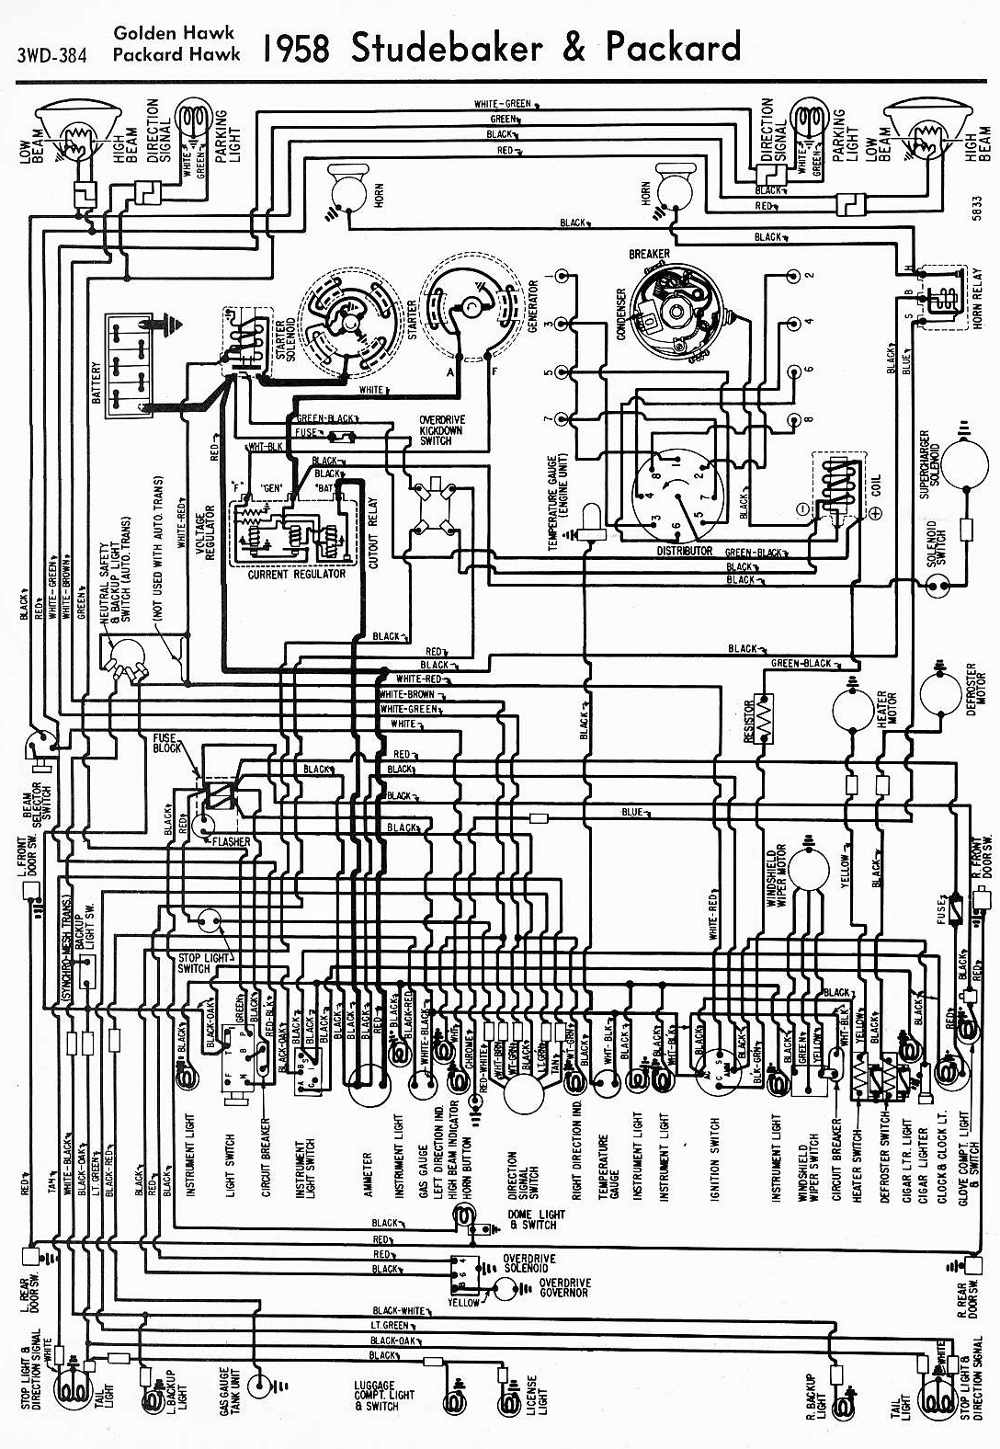 small resolution of packard motor wiring wiring diagrams electric motor capacitor wiring diagram packard electric motor wiring diagram